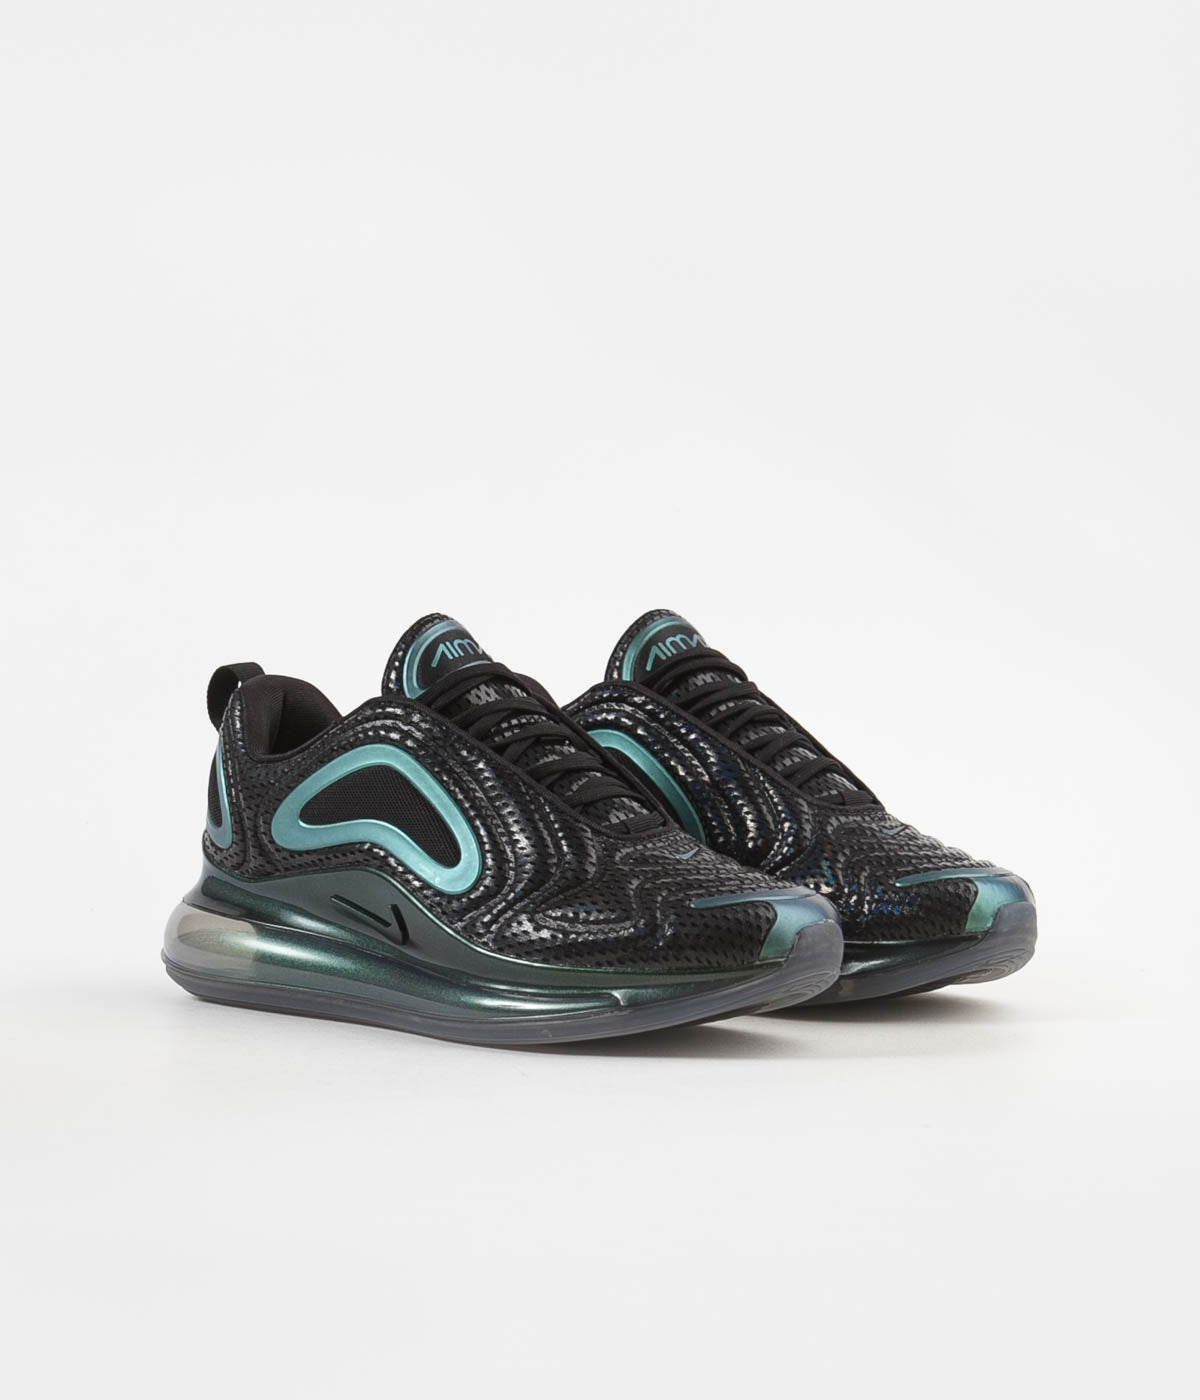 check out 4e4fc db489 ... Nike Air Max 720  Iridescent Mesh  Shoes - Black   Black - Metallic  Silver ...